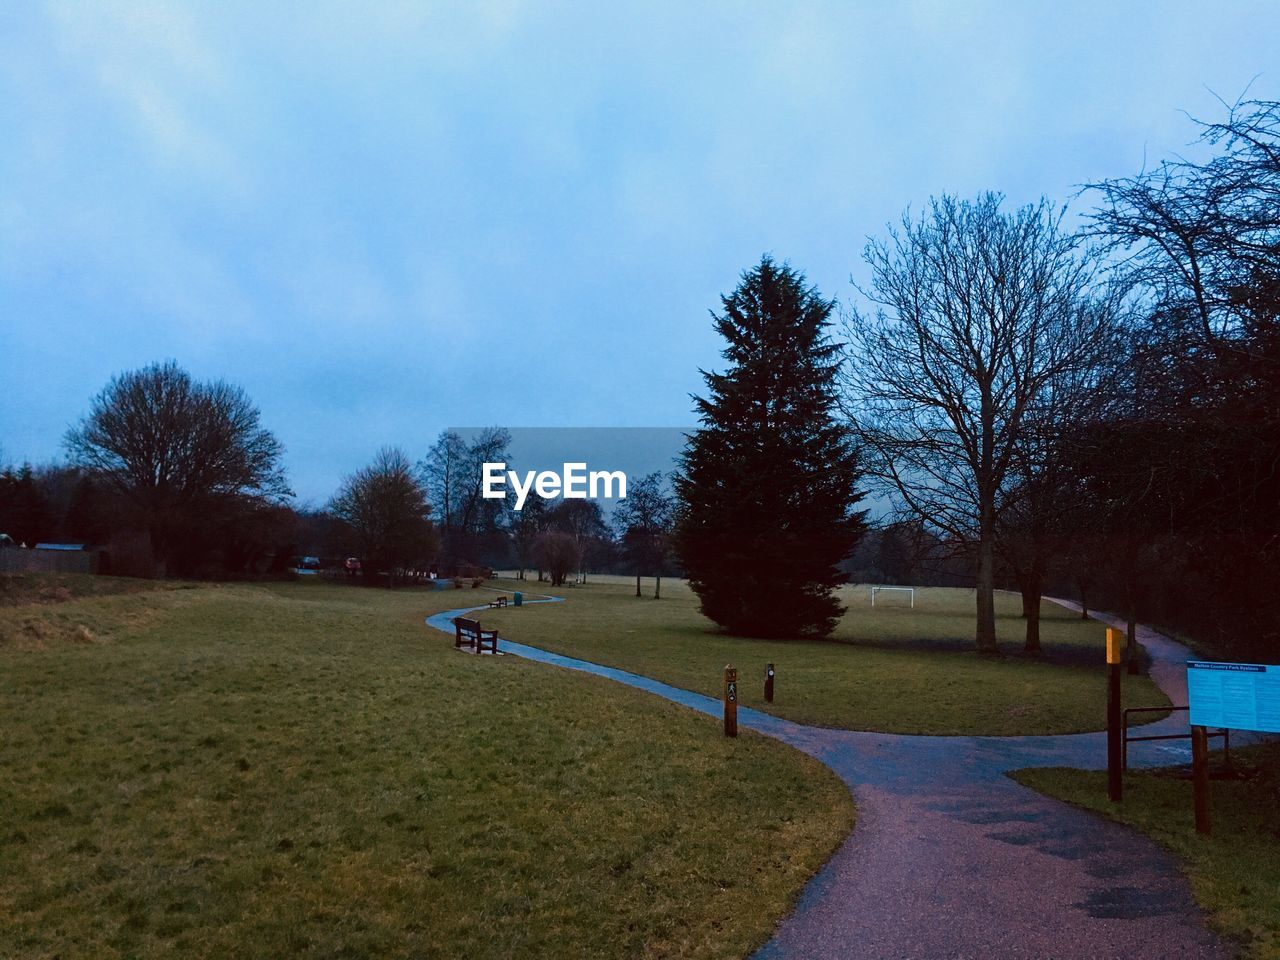 tree, plant, sky, nature, the way forward, cloud - sky, road, direction, footpath, grass, beauty in nature, transportation, day, tranquility, park, street, no people, growth, tranquil scene, landscape, outdoors